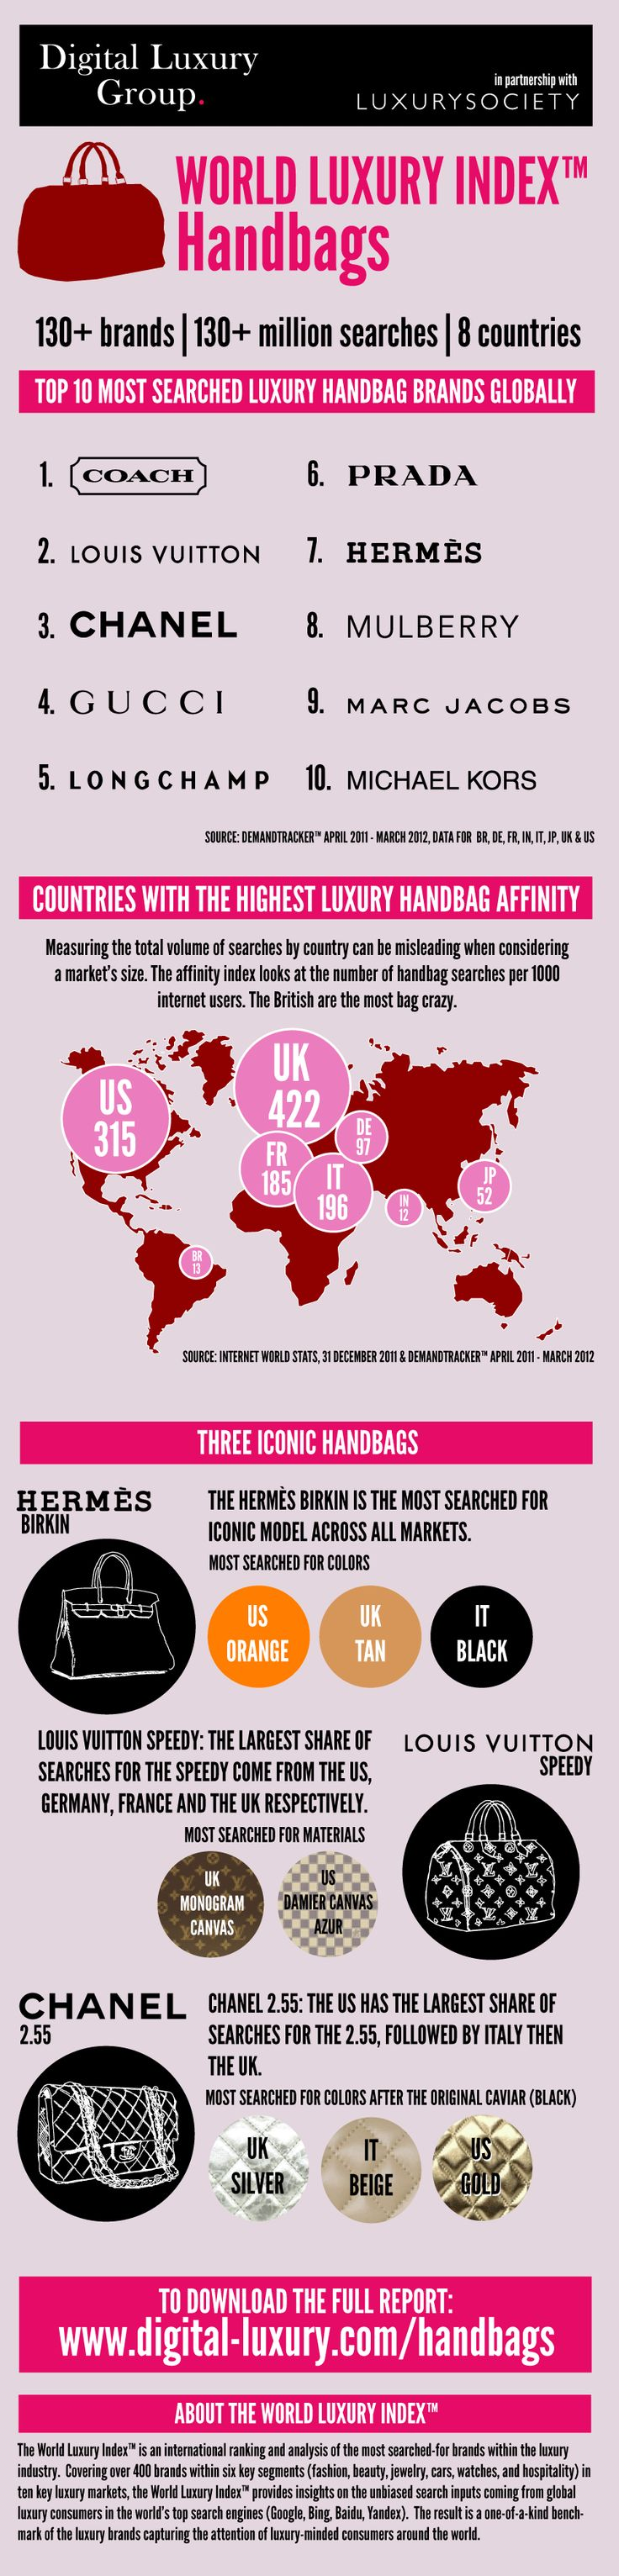 A ranking and analysis of the most sought after luxury handbag brands around the globe. To download the report visit: http://www.digital-luxury.com/ha